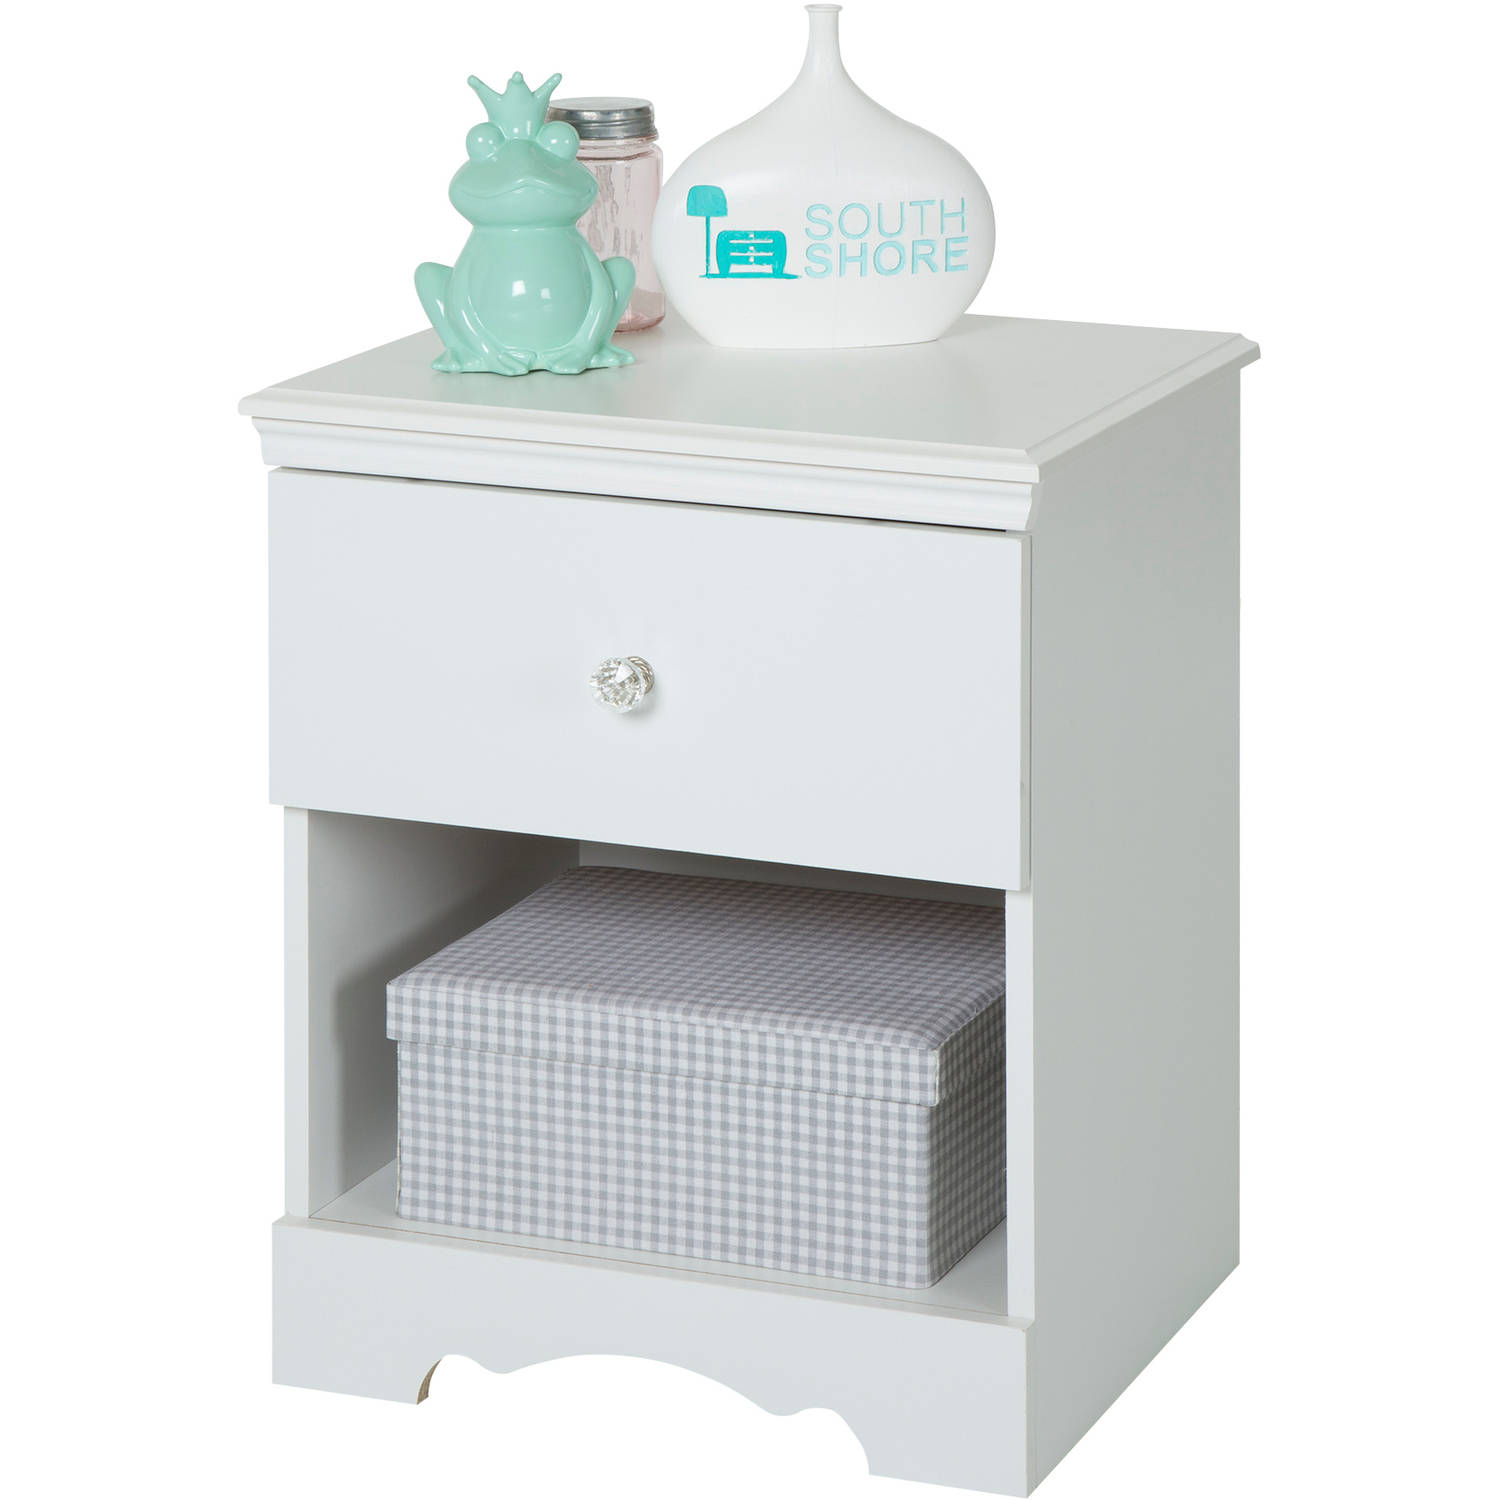 South Shore Crystal 1-Drawer Nightstand, Multiple Finishes